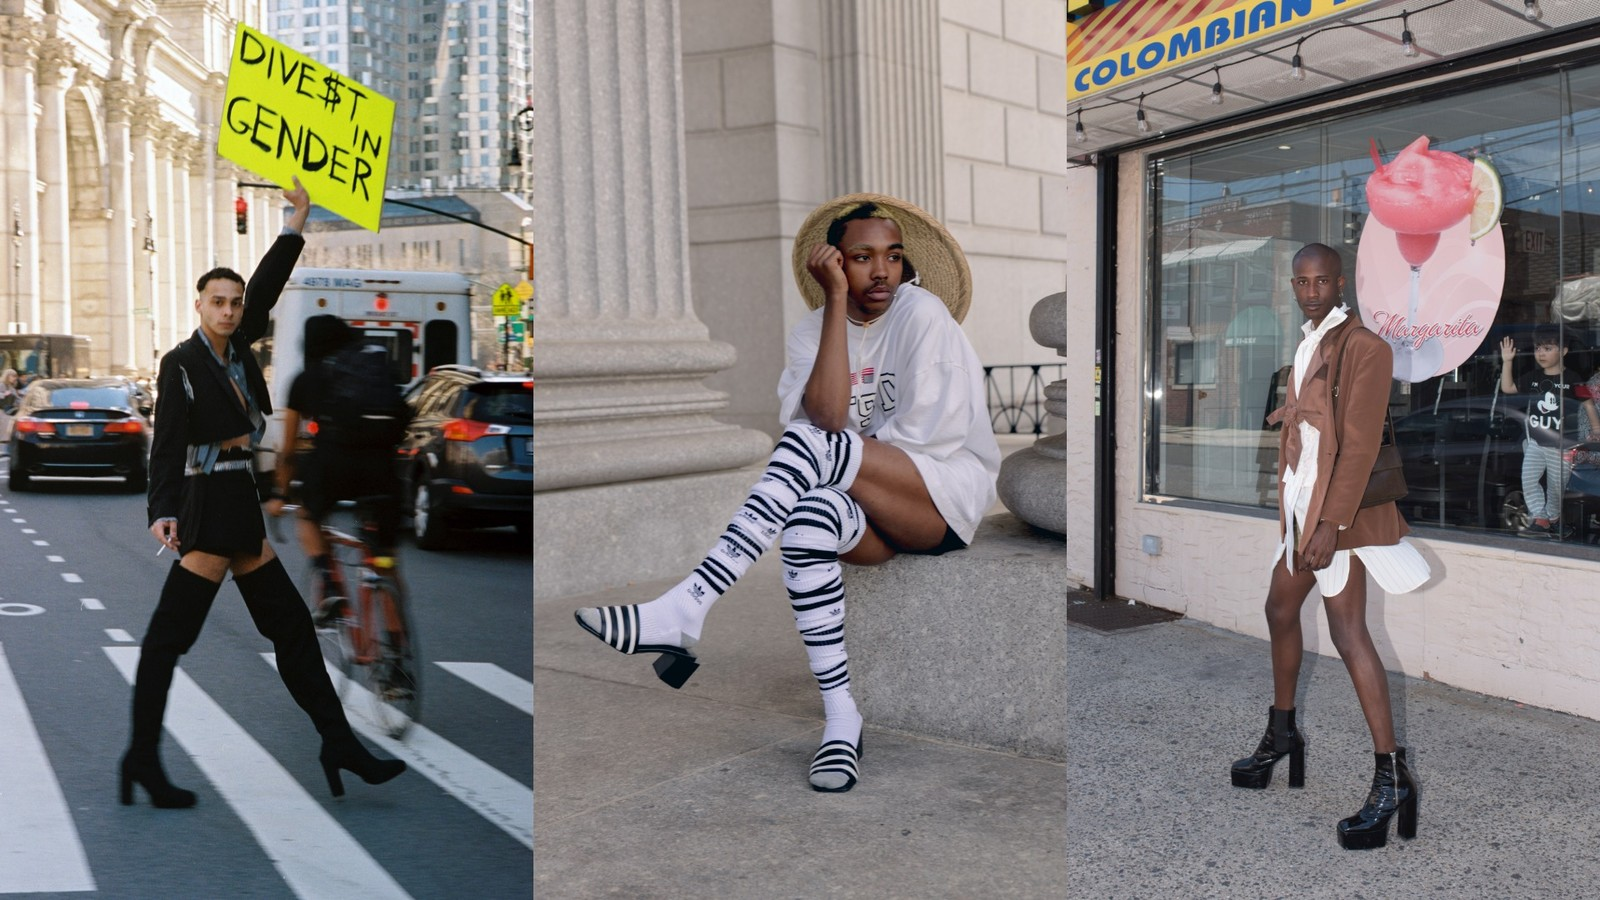 These Designers Want More Men in Heels